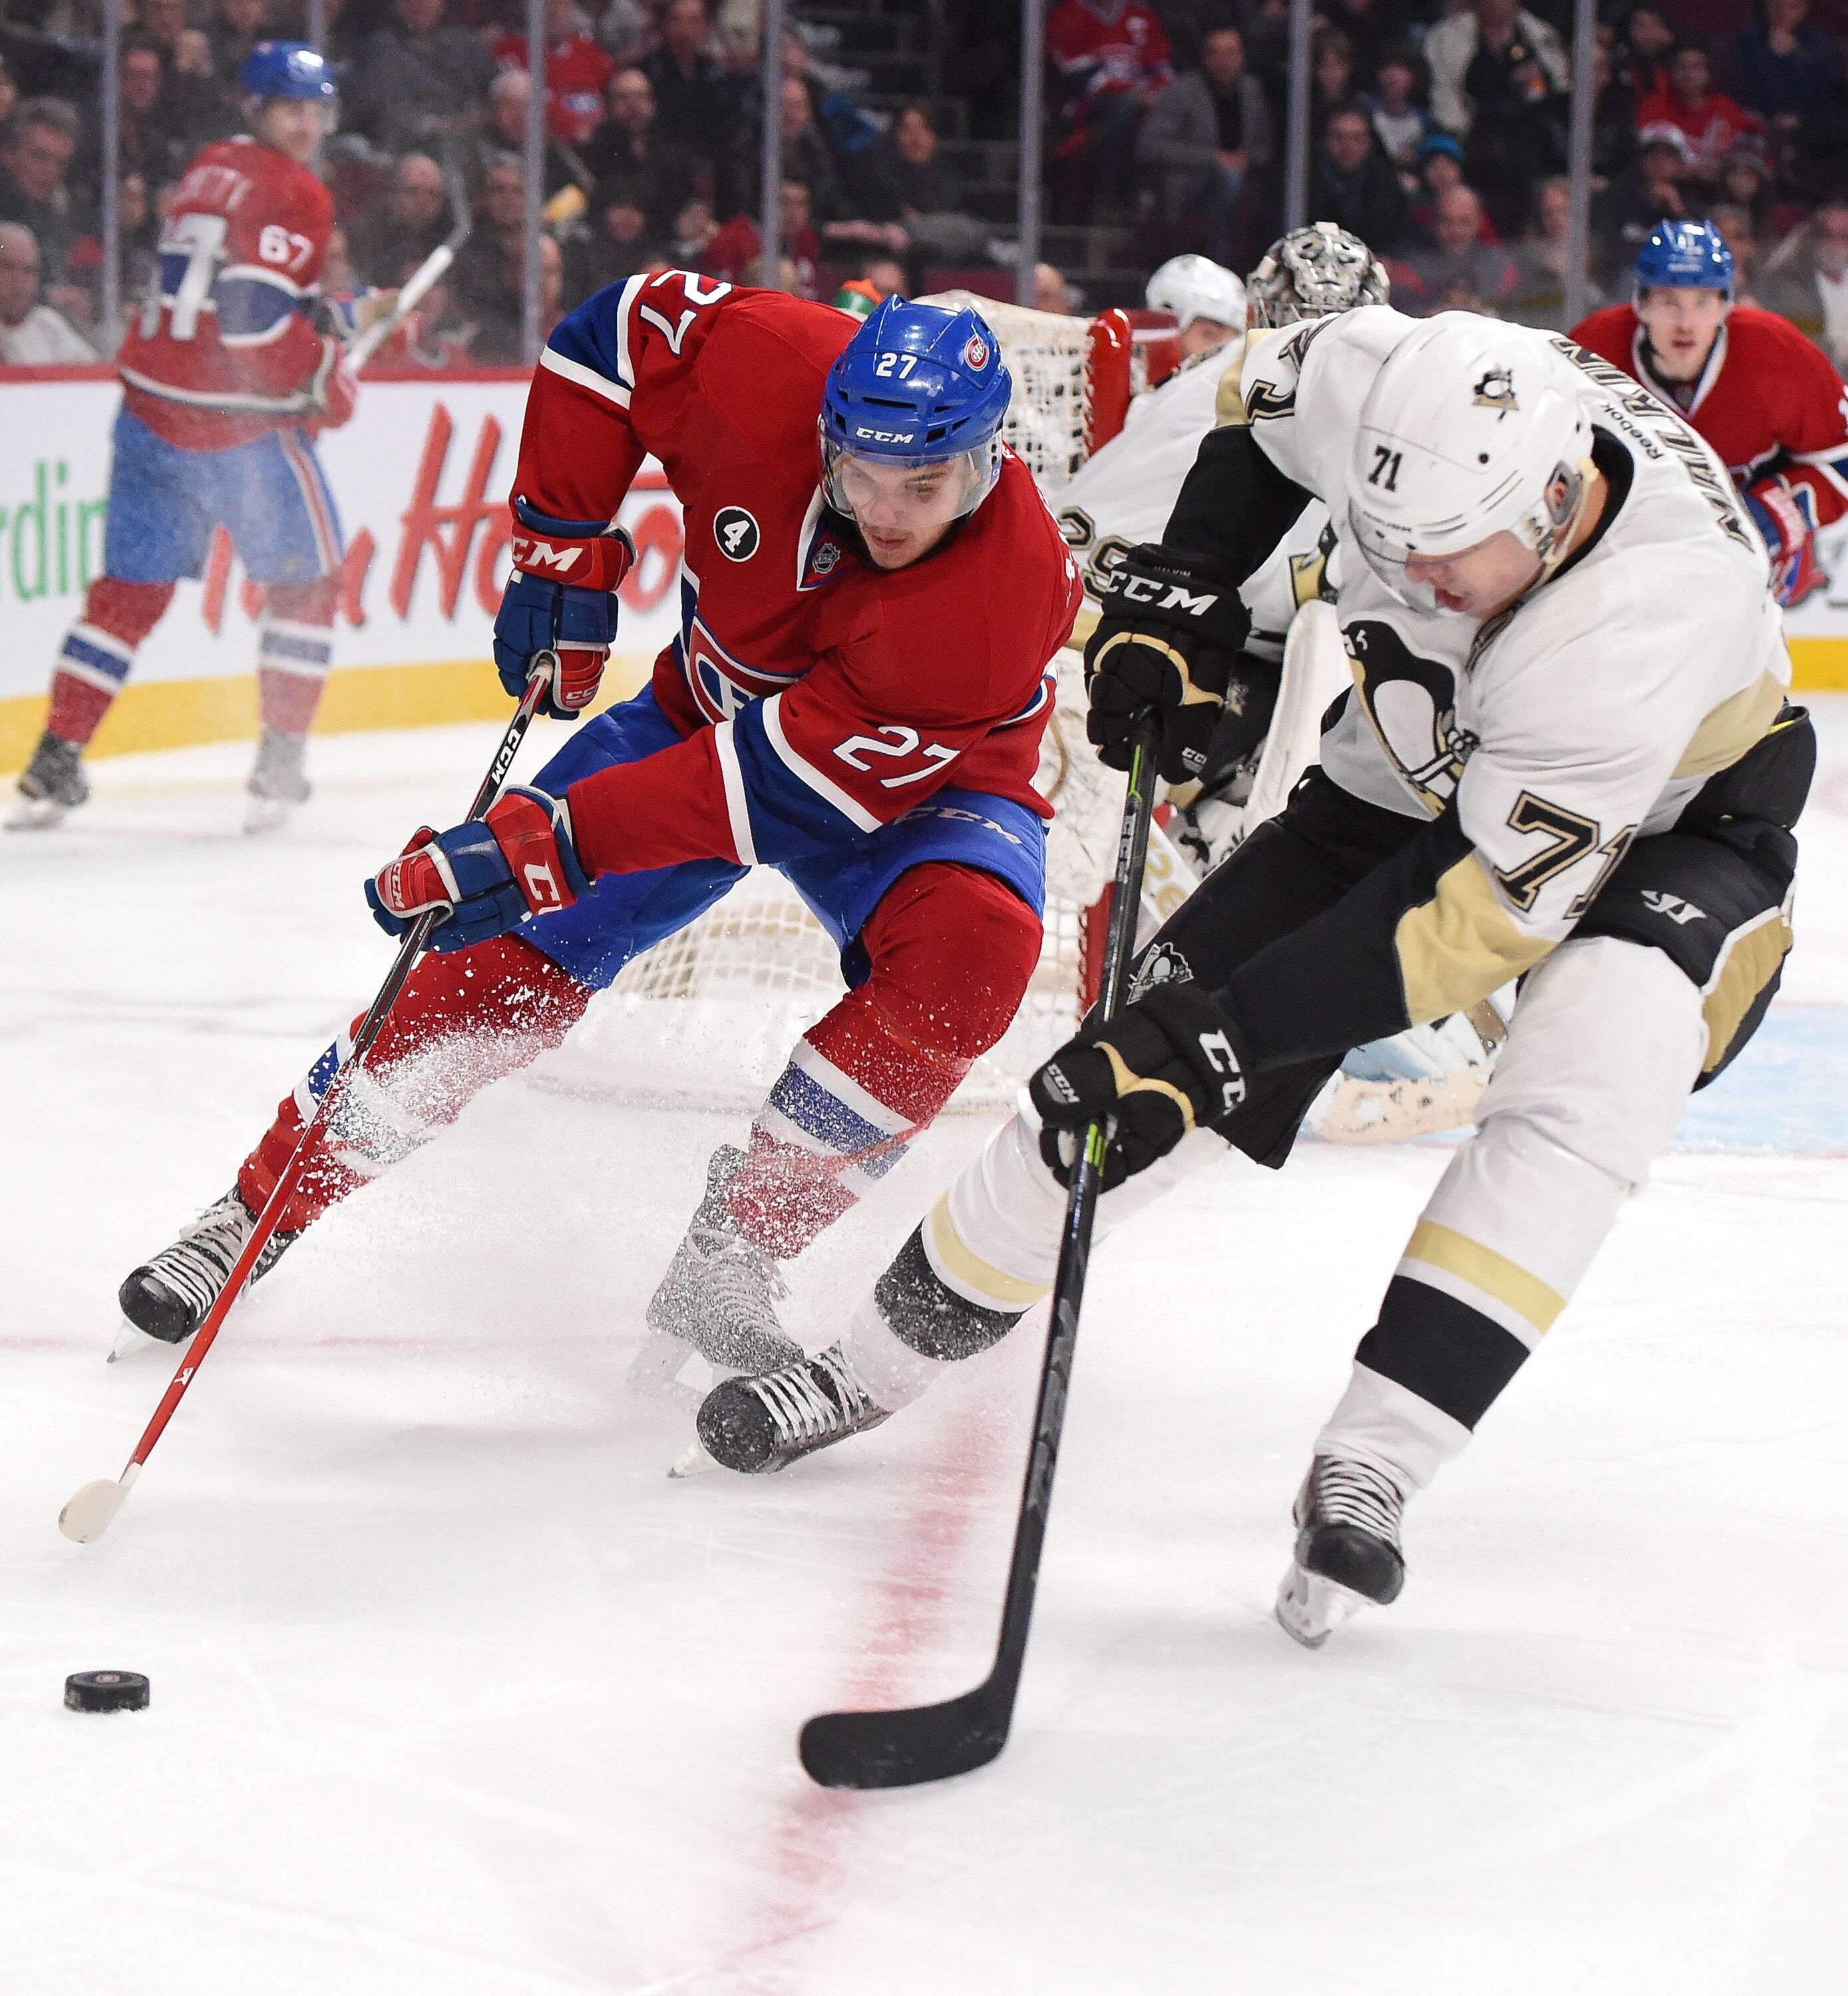 461304716-pittsburgh-penguins-v-montreal-canadiens.jpg